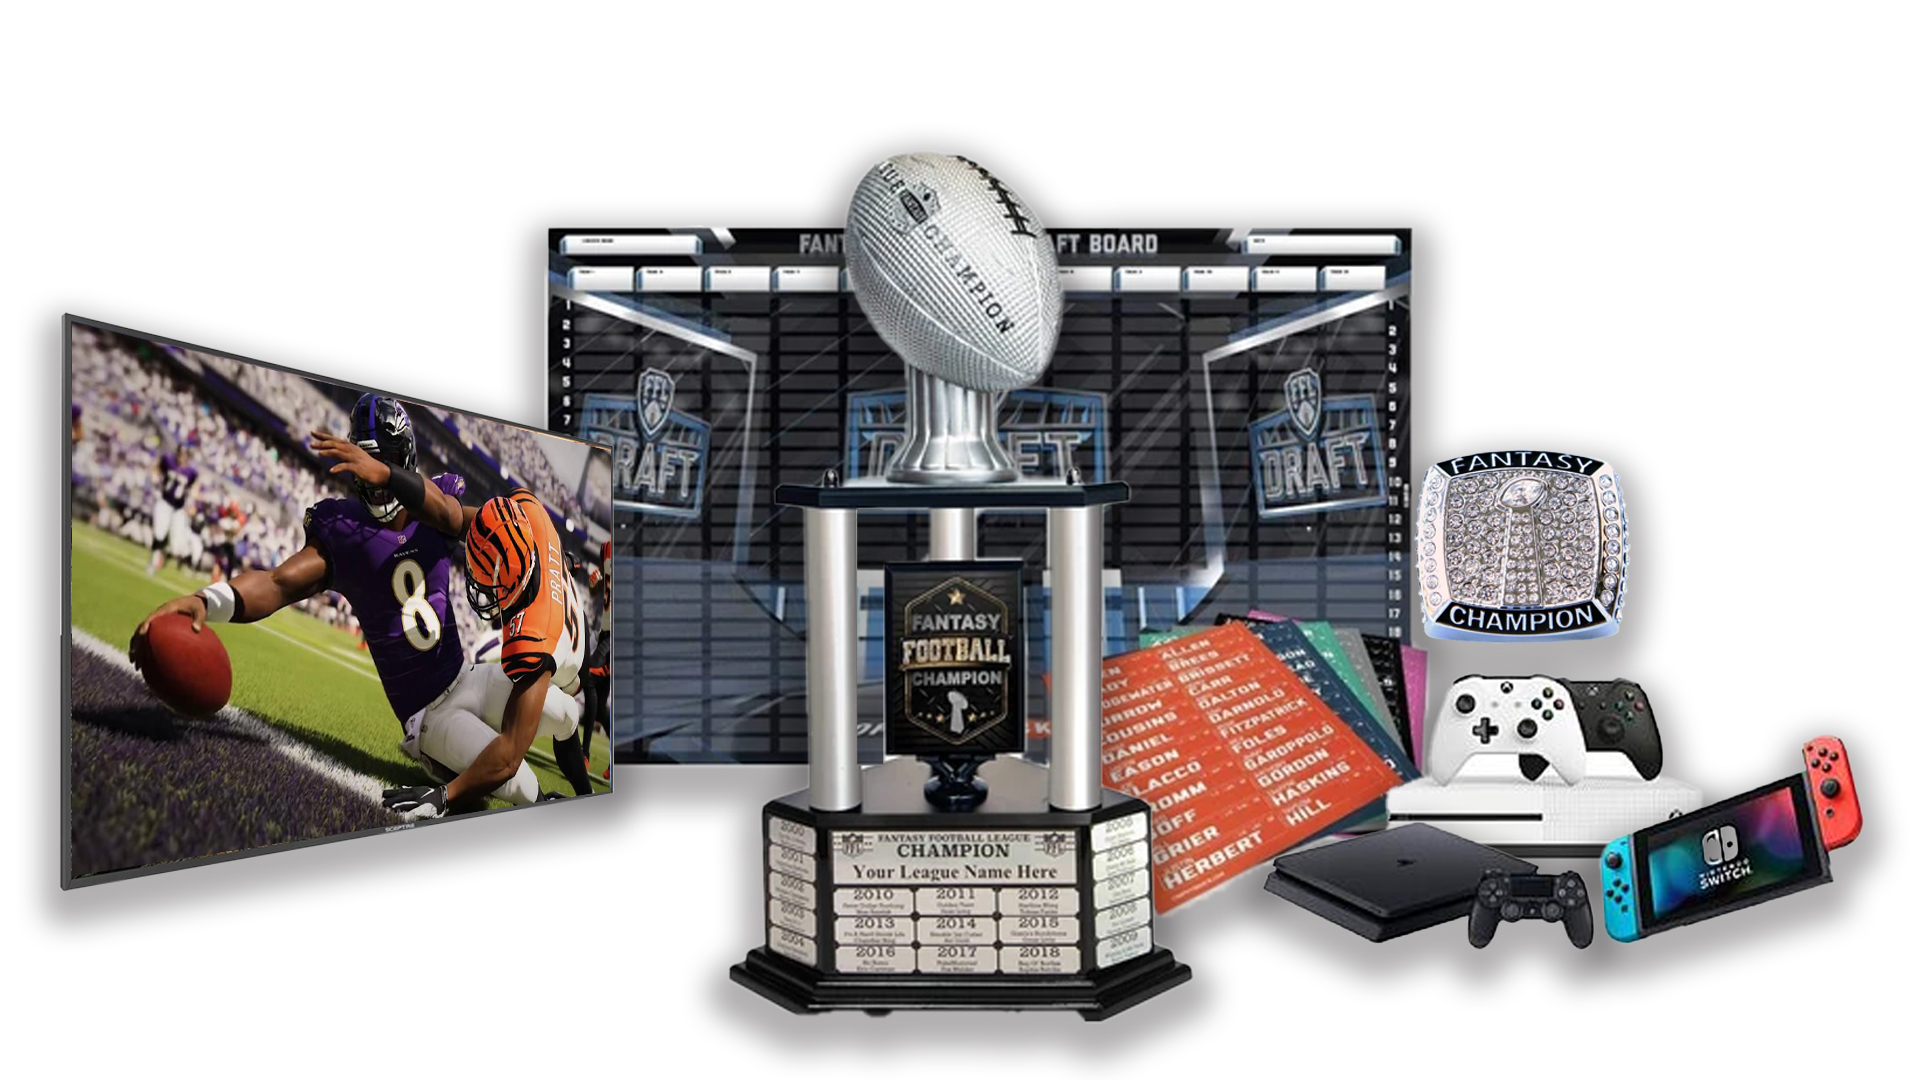 - FFDraft Trophy 3 White - Fantasy Football Draft Parties at 1Life2Play